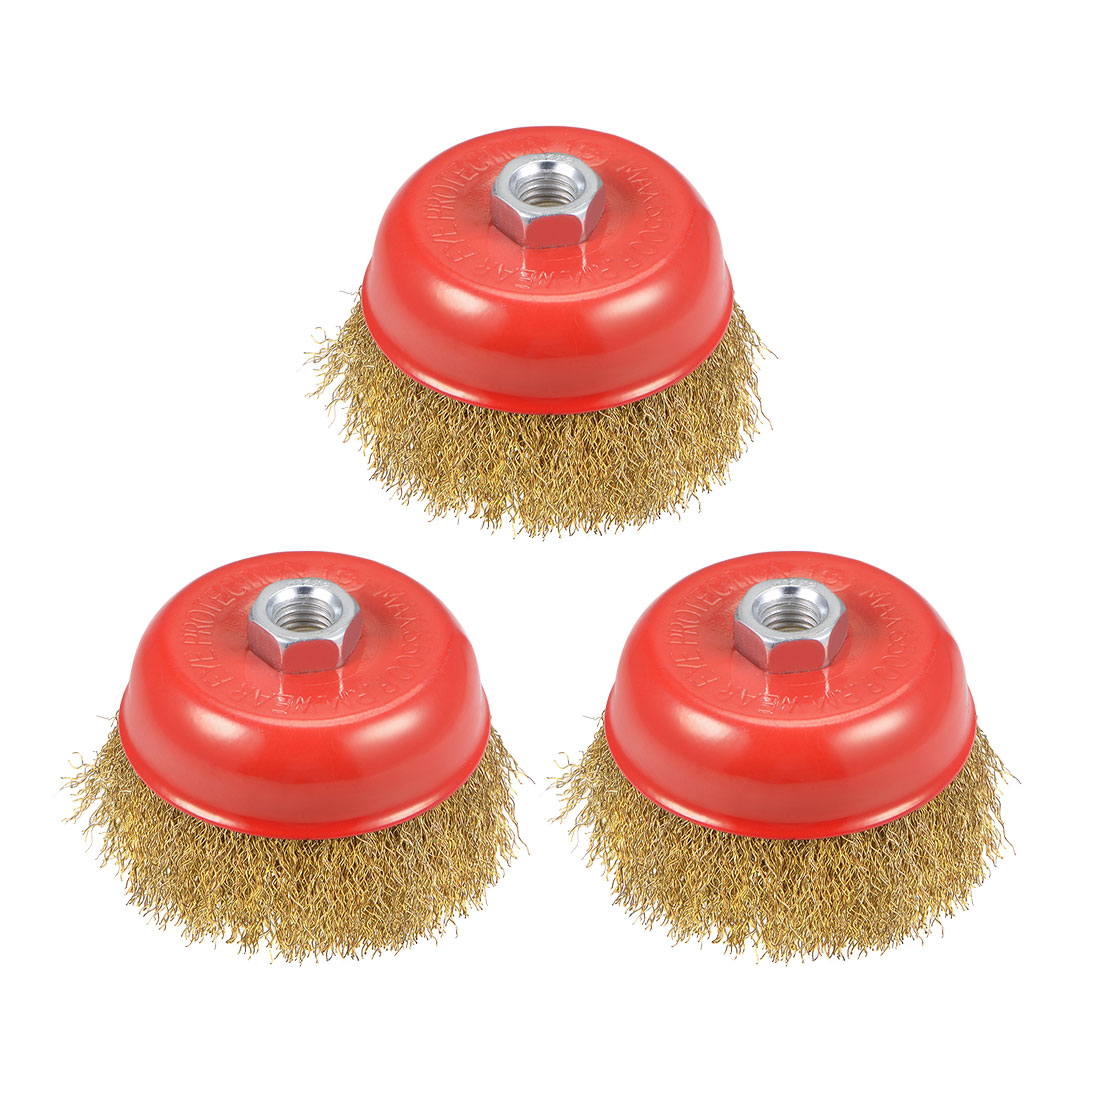 4-Inch Wire Cup Brush Brass Plated Crimped Steel with M14 Threaded Hole 3 Pcs